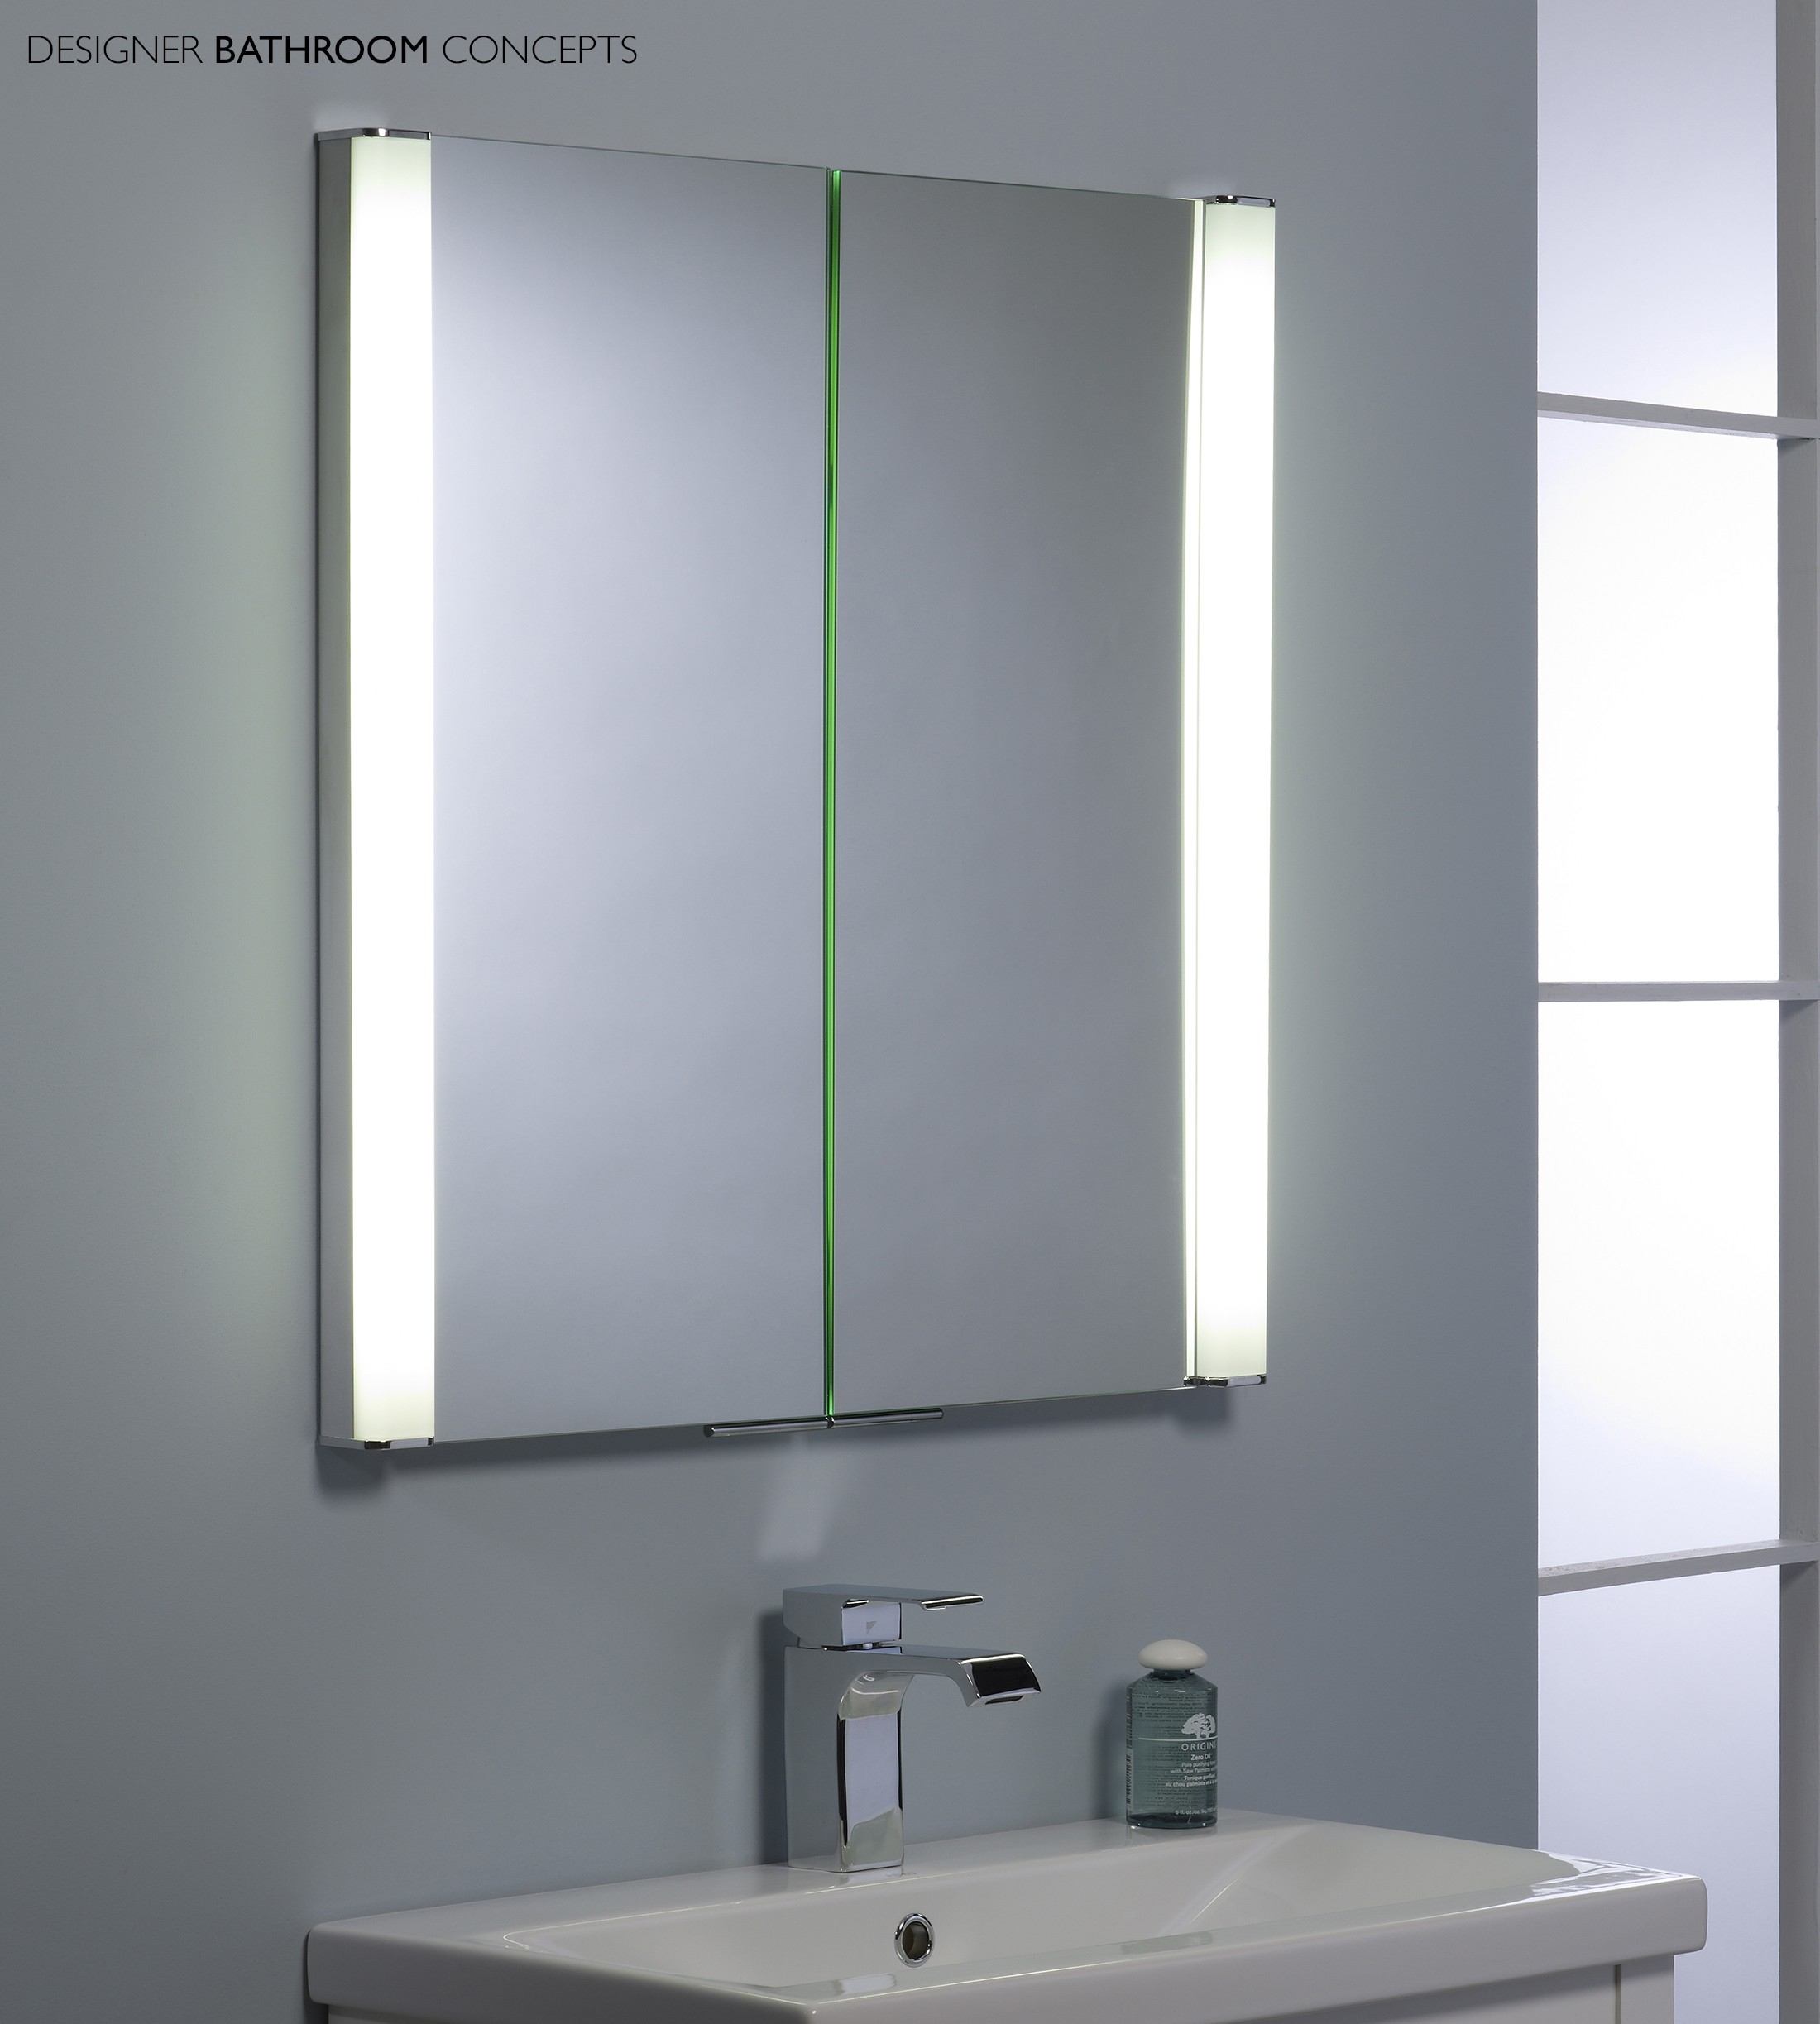 Slimline Bathroom Cabinet With Light